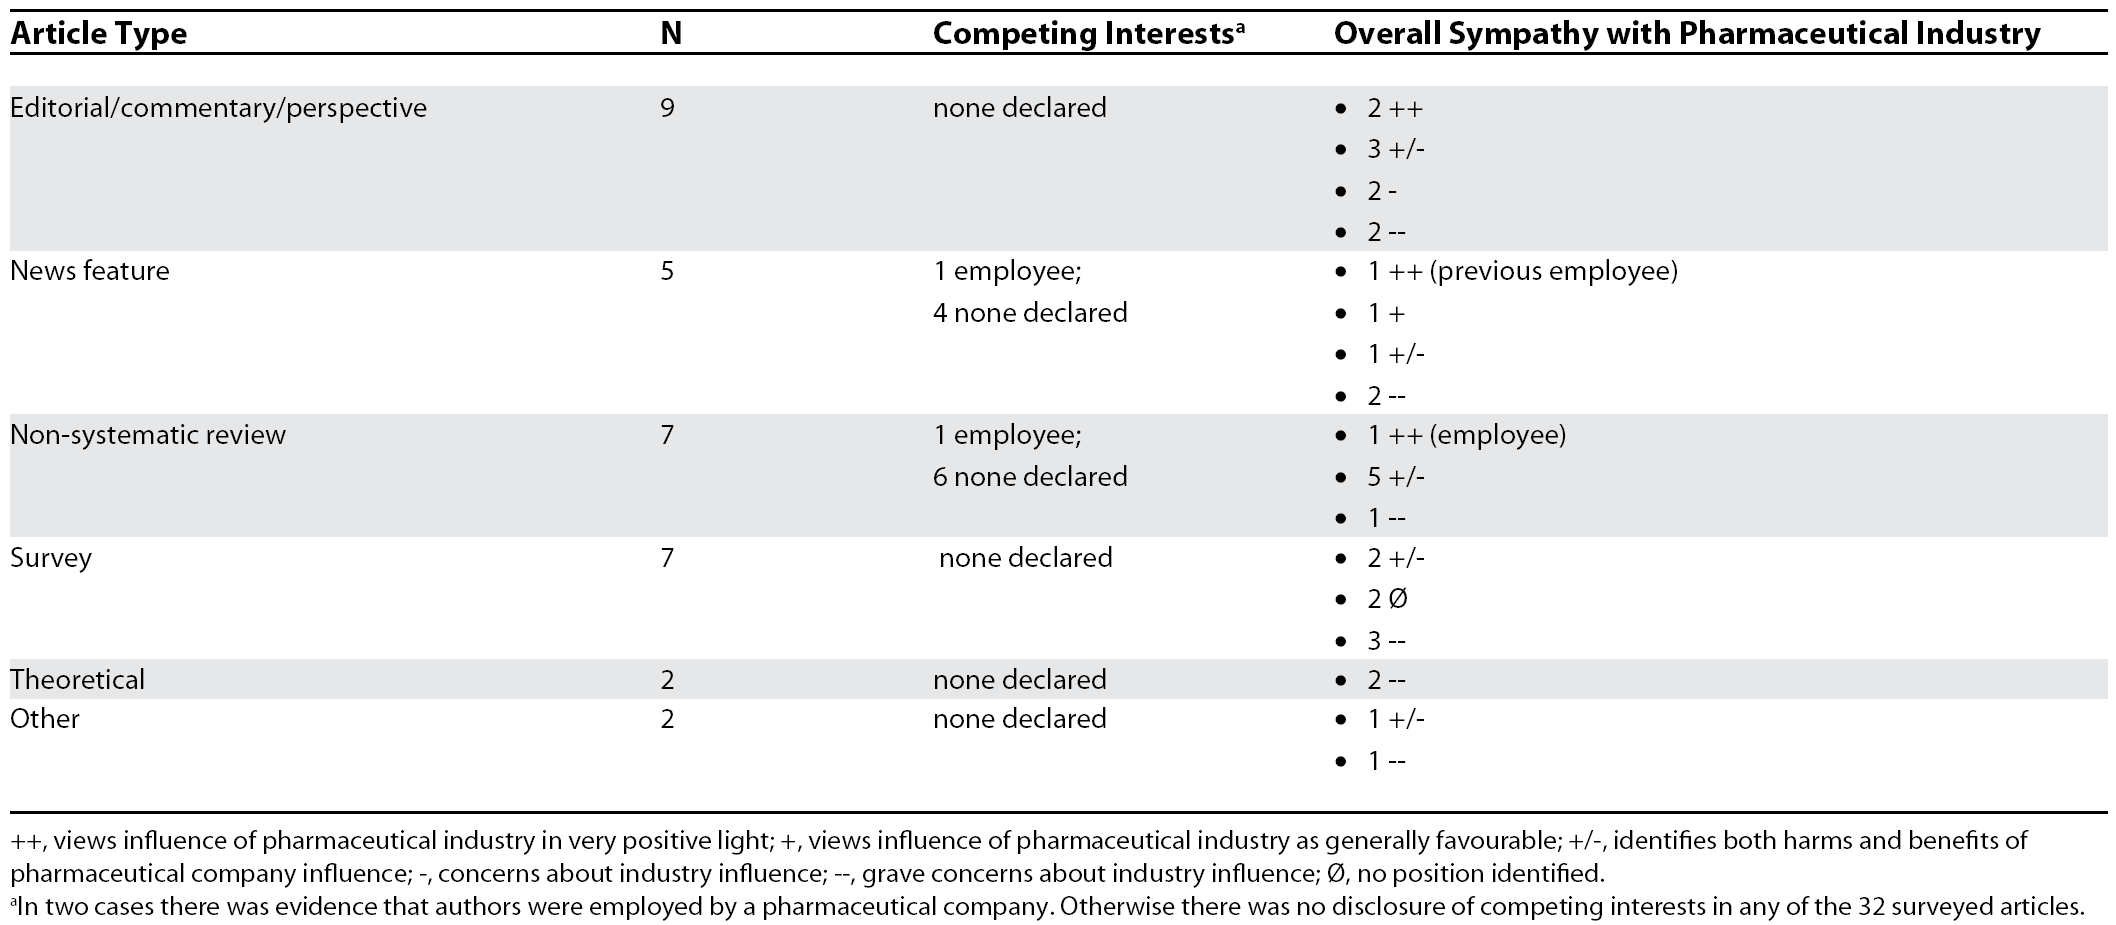 Summary of Article Positions and Competing Interests